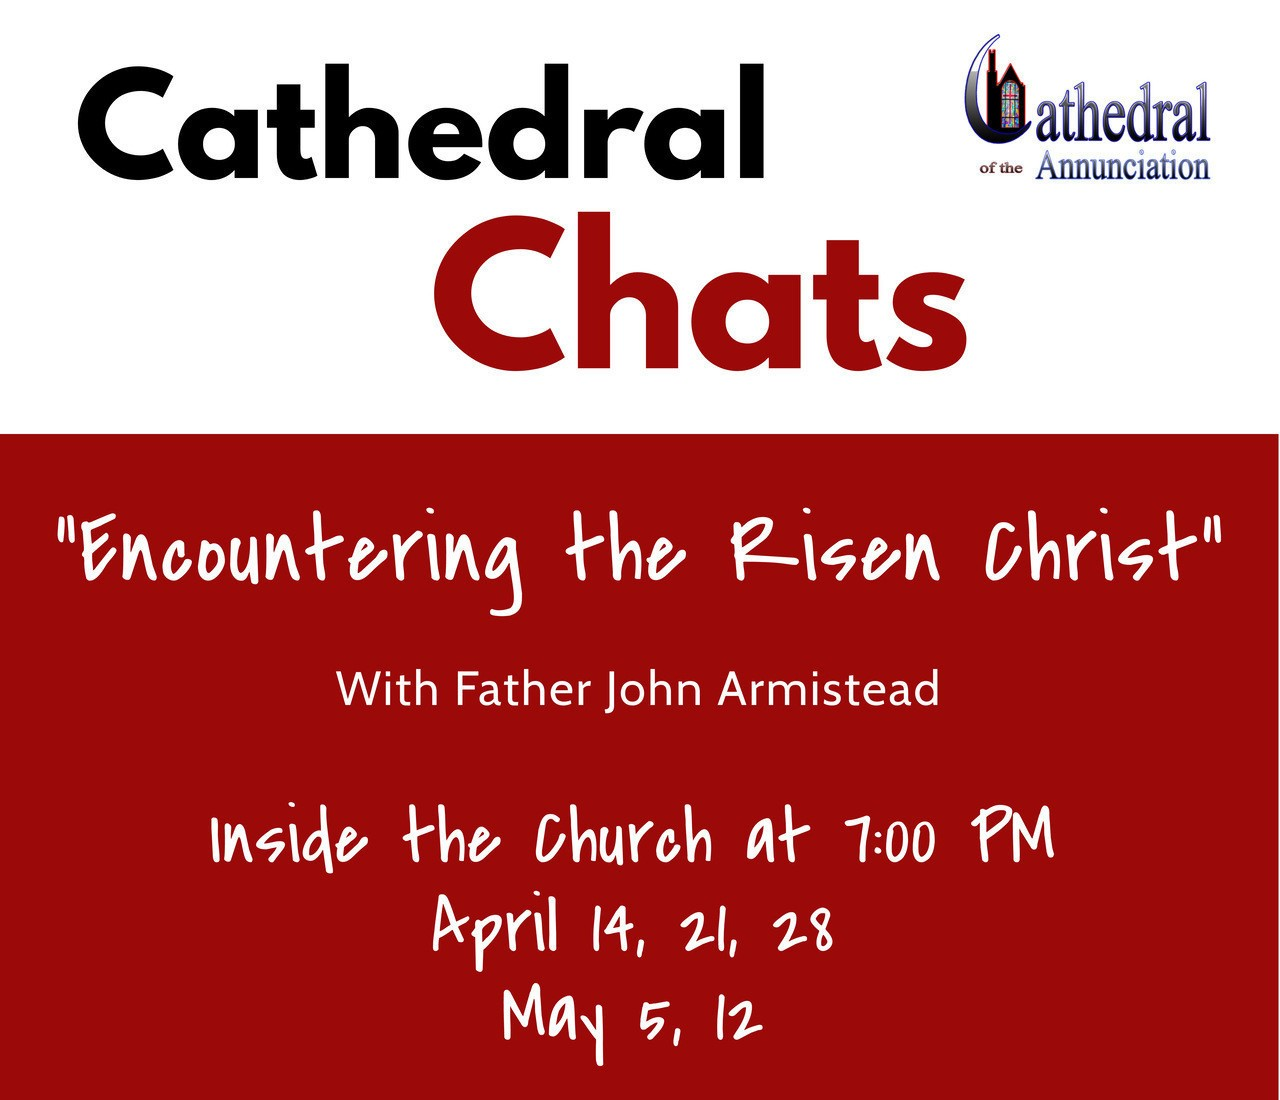 Cathedral Chats Dates